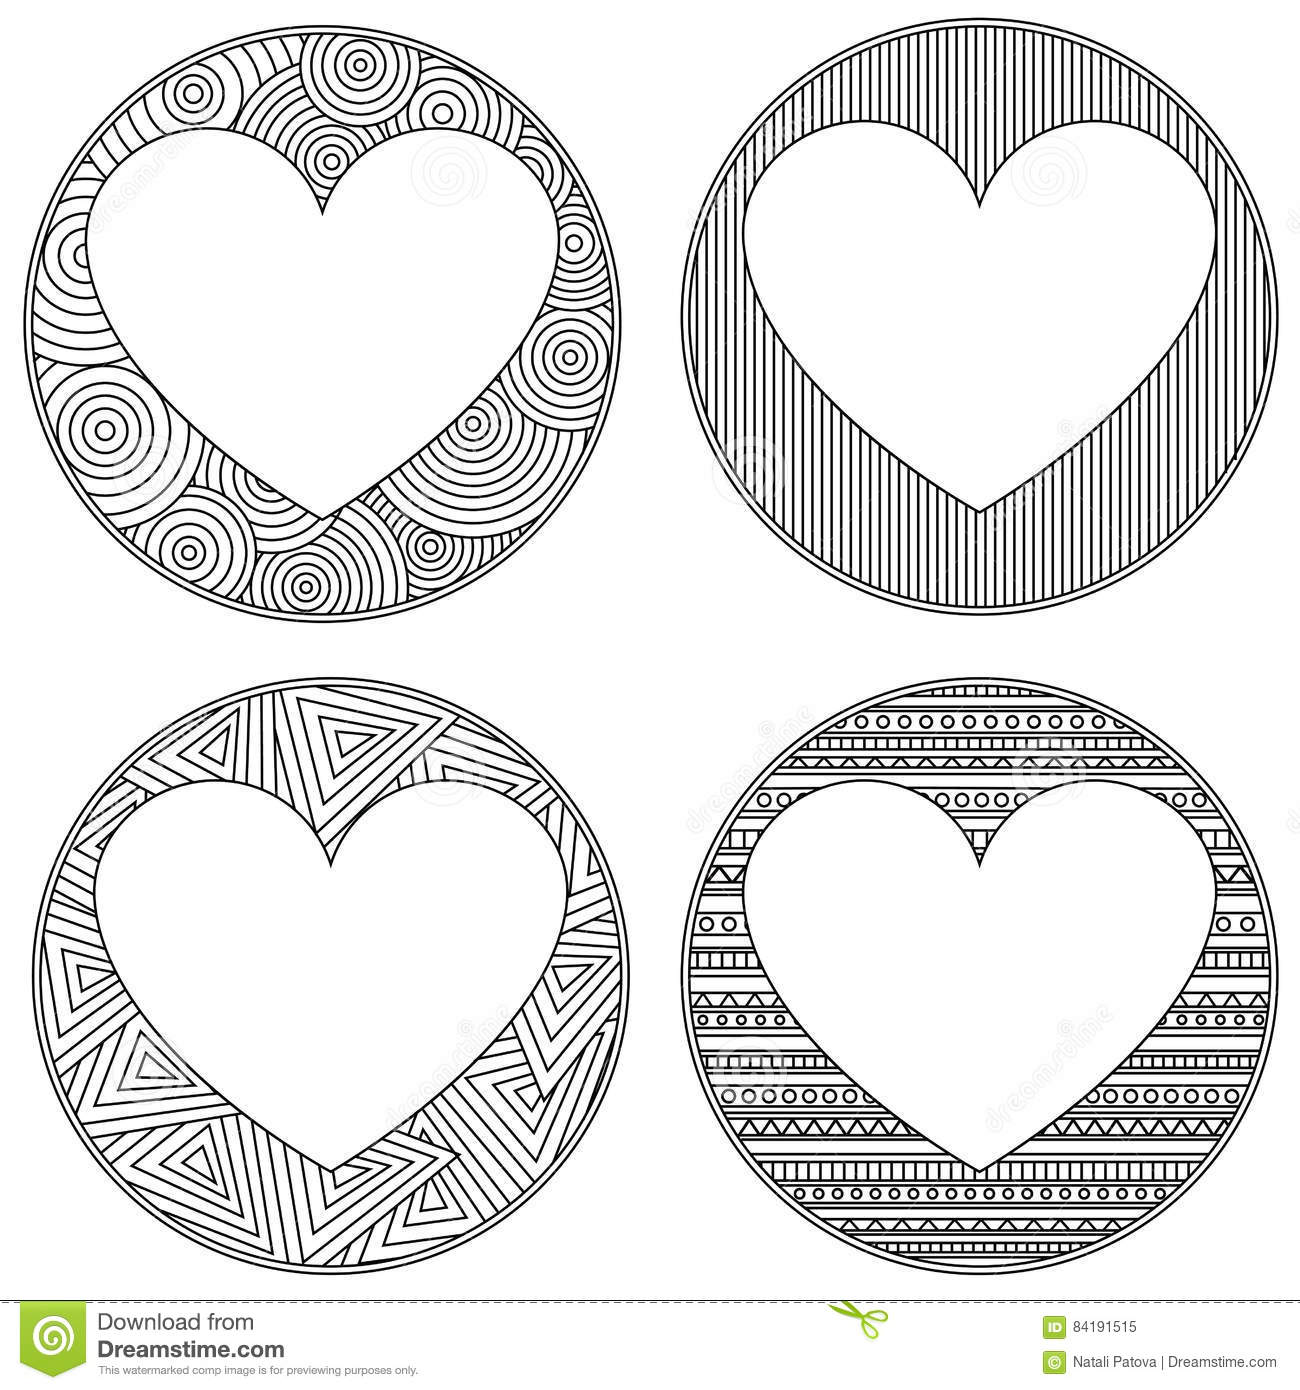 Uncolored Heart Shaped Frame In Zen Art Style With Place For The